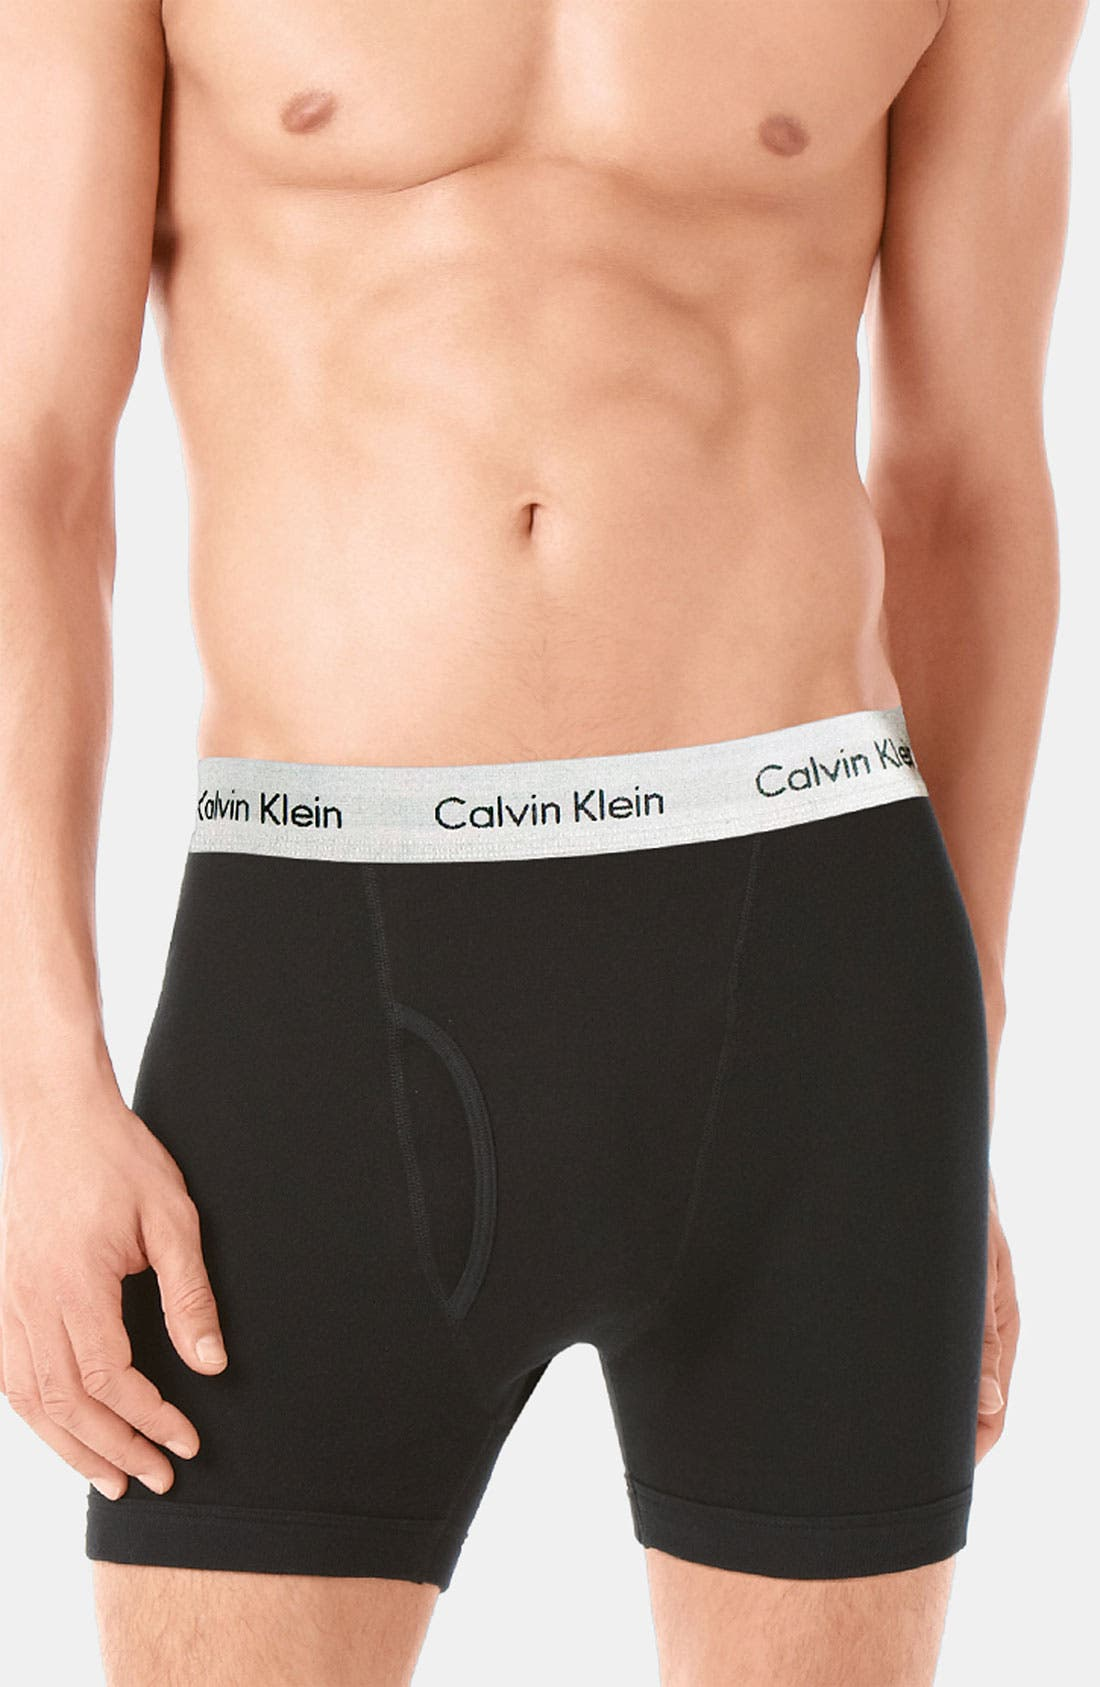 Alternate Image 1 Selected - Calvin Klein Boxer Briefs (Assorted 3-Pack)